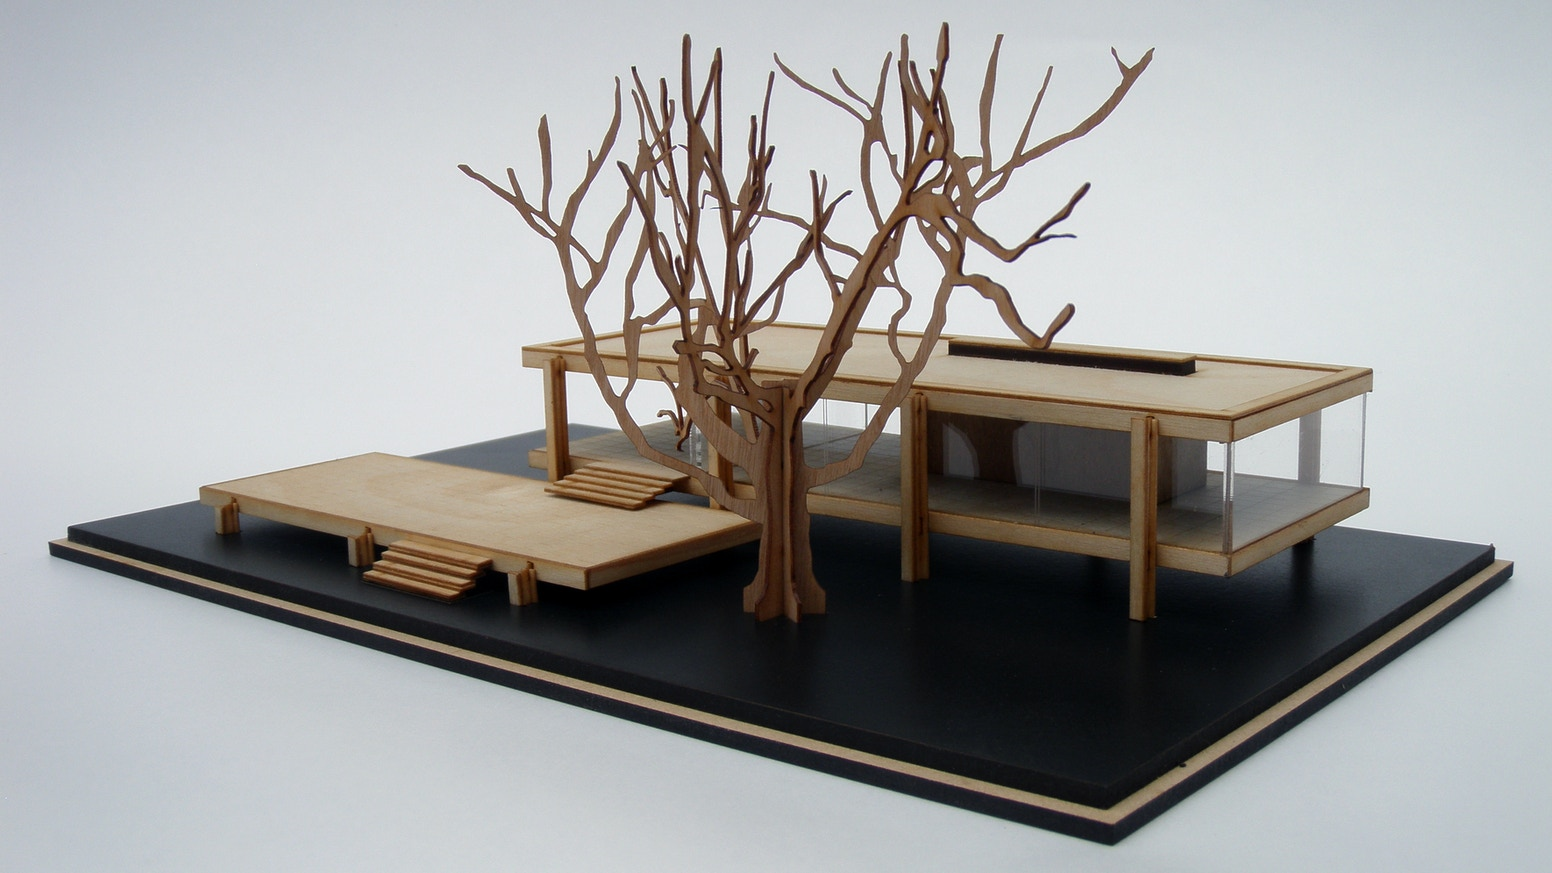 A high quality architectural kit of Mies van de Rohe's Farnsworth House. Well designed, fun to construct and something to treasure.